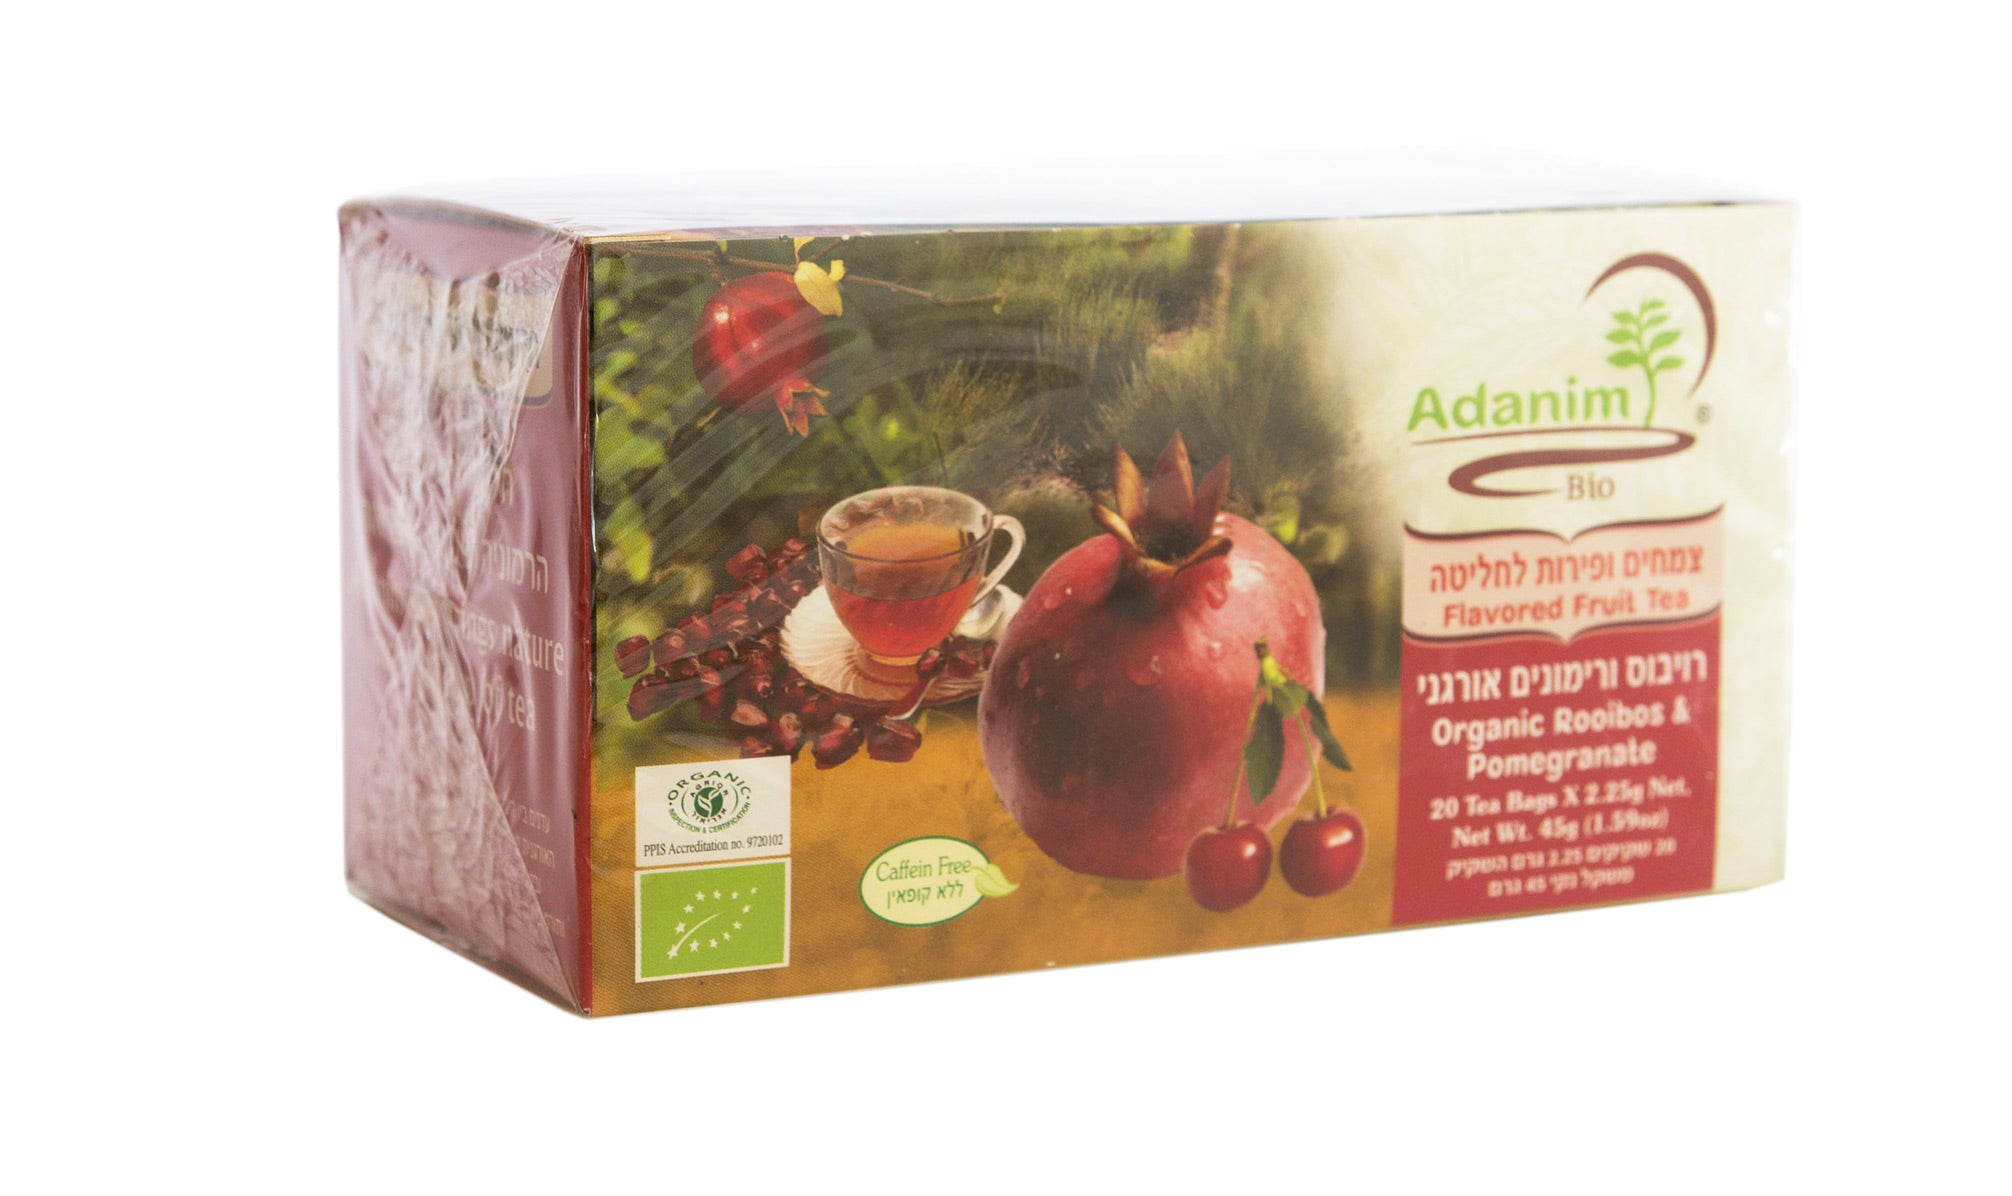 Organic Fruit Tea - Pomegranate and Rooibos - Blessed Buy Israel